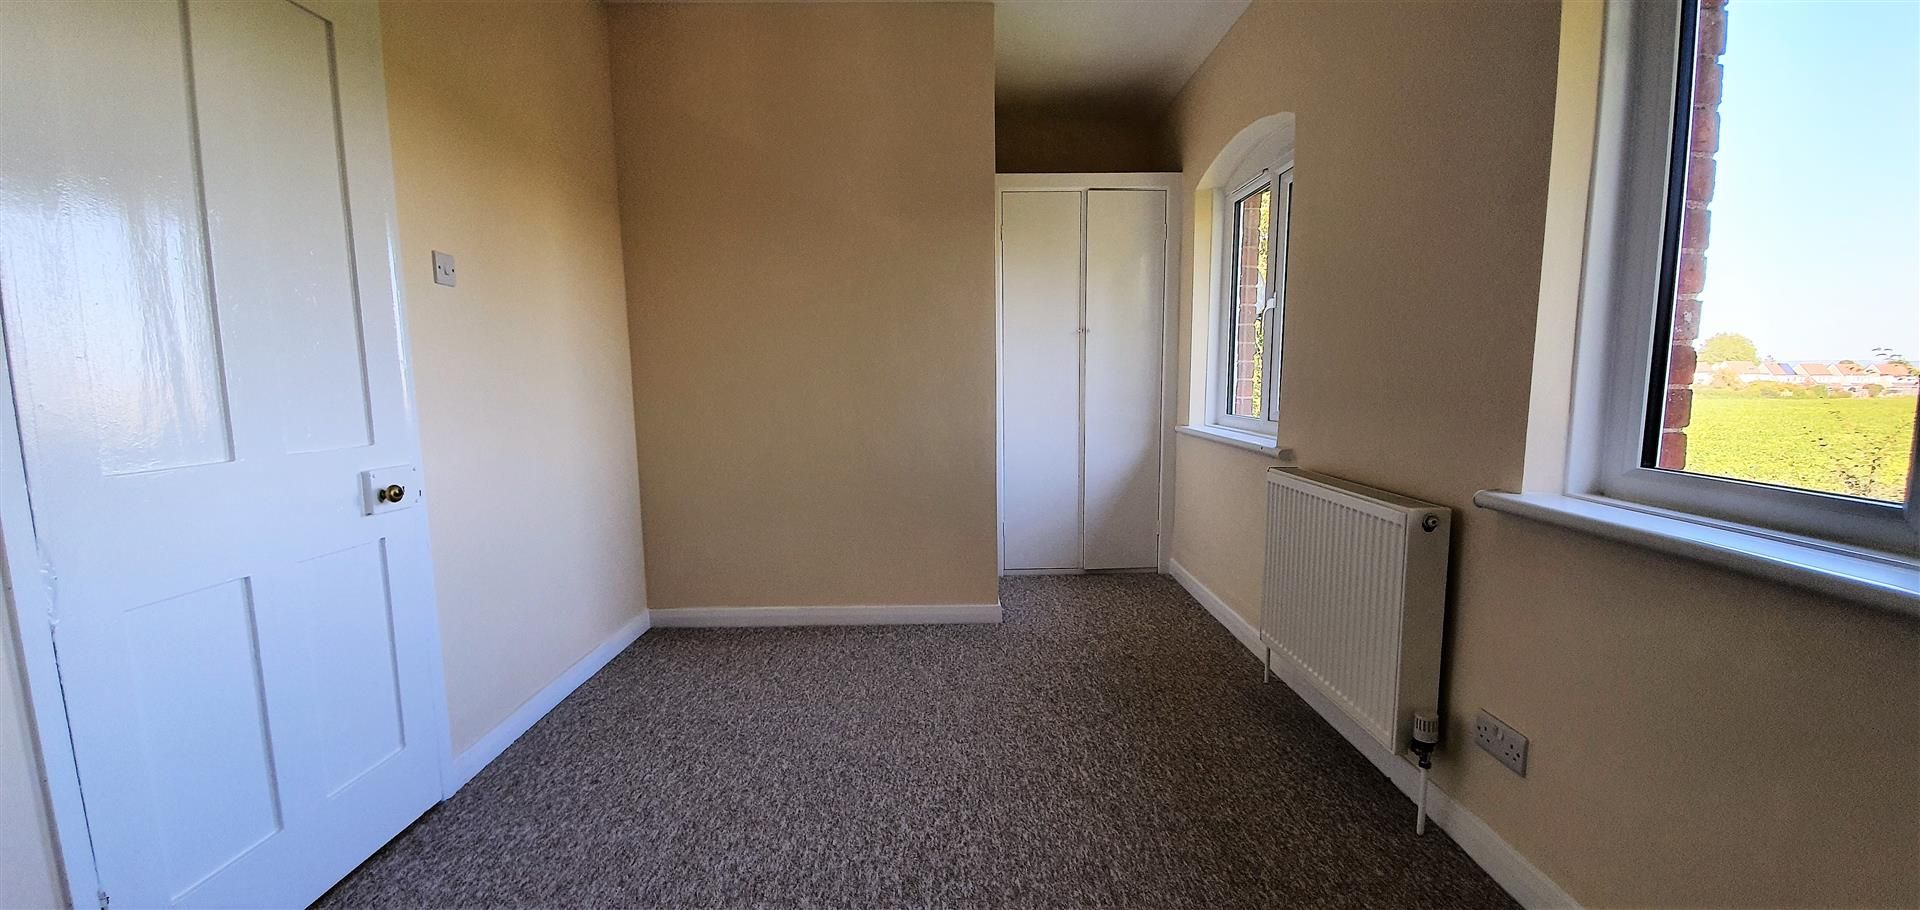 4 bed house to rent in Breinton  - Property Image 8